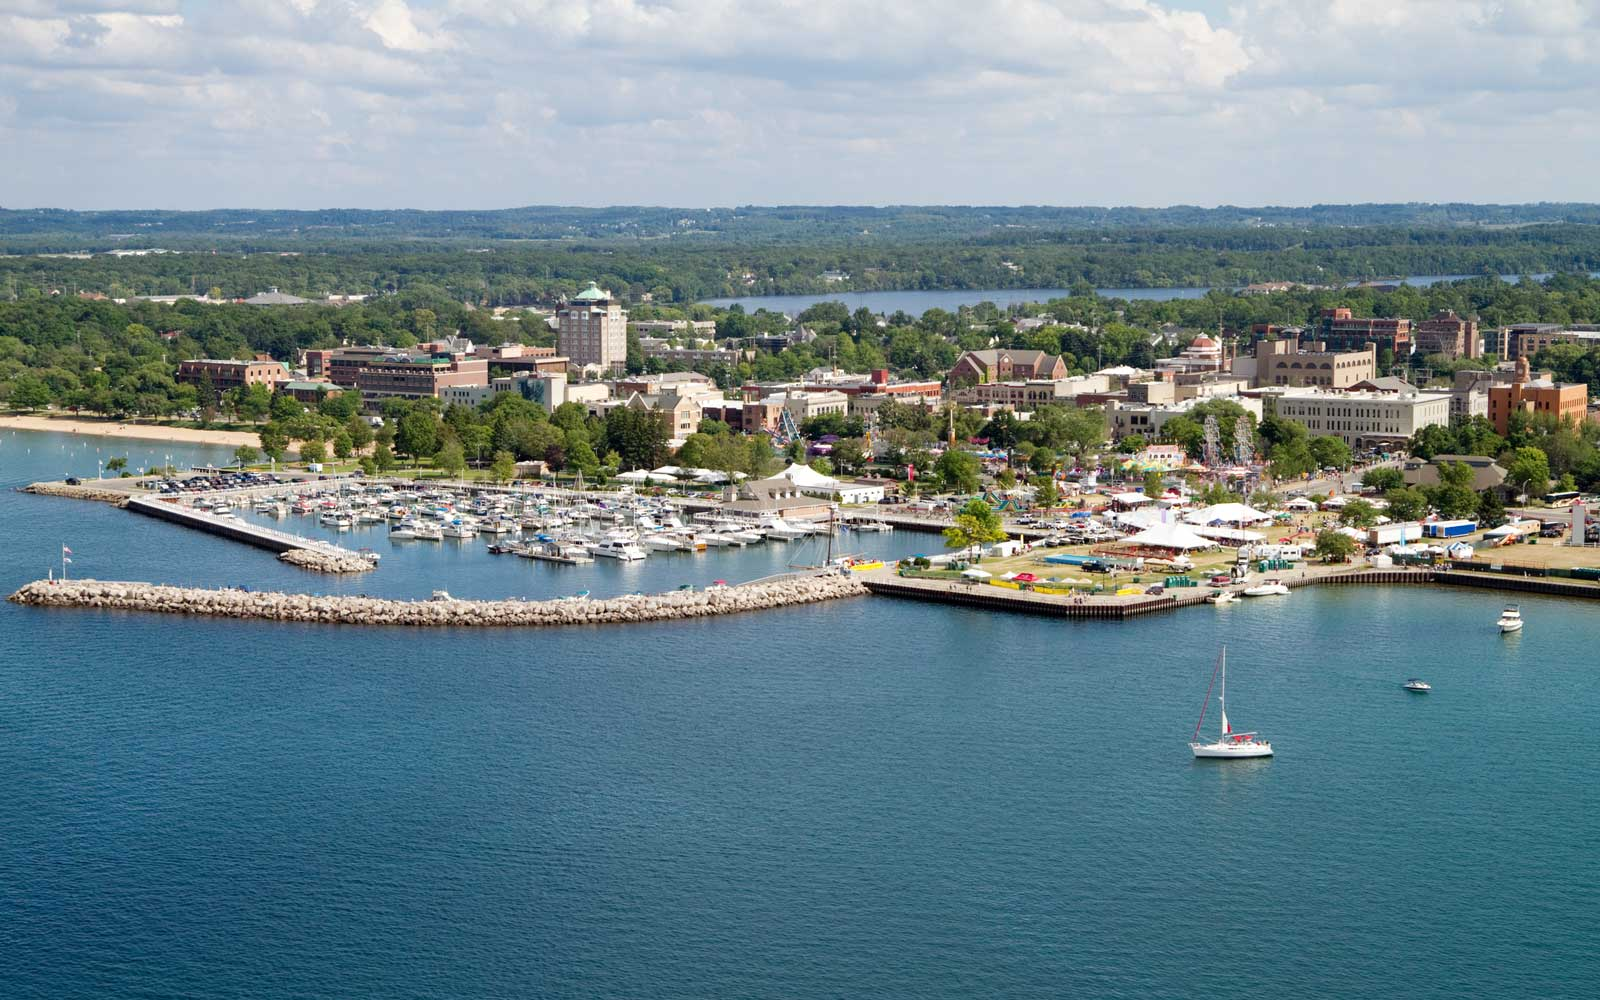 This City Is the Most Expensive Summer Destination in the Midwest